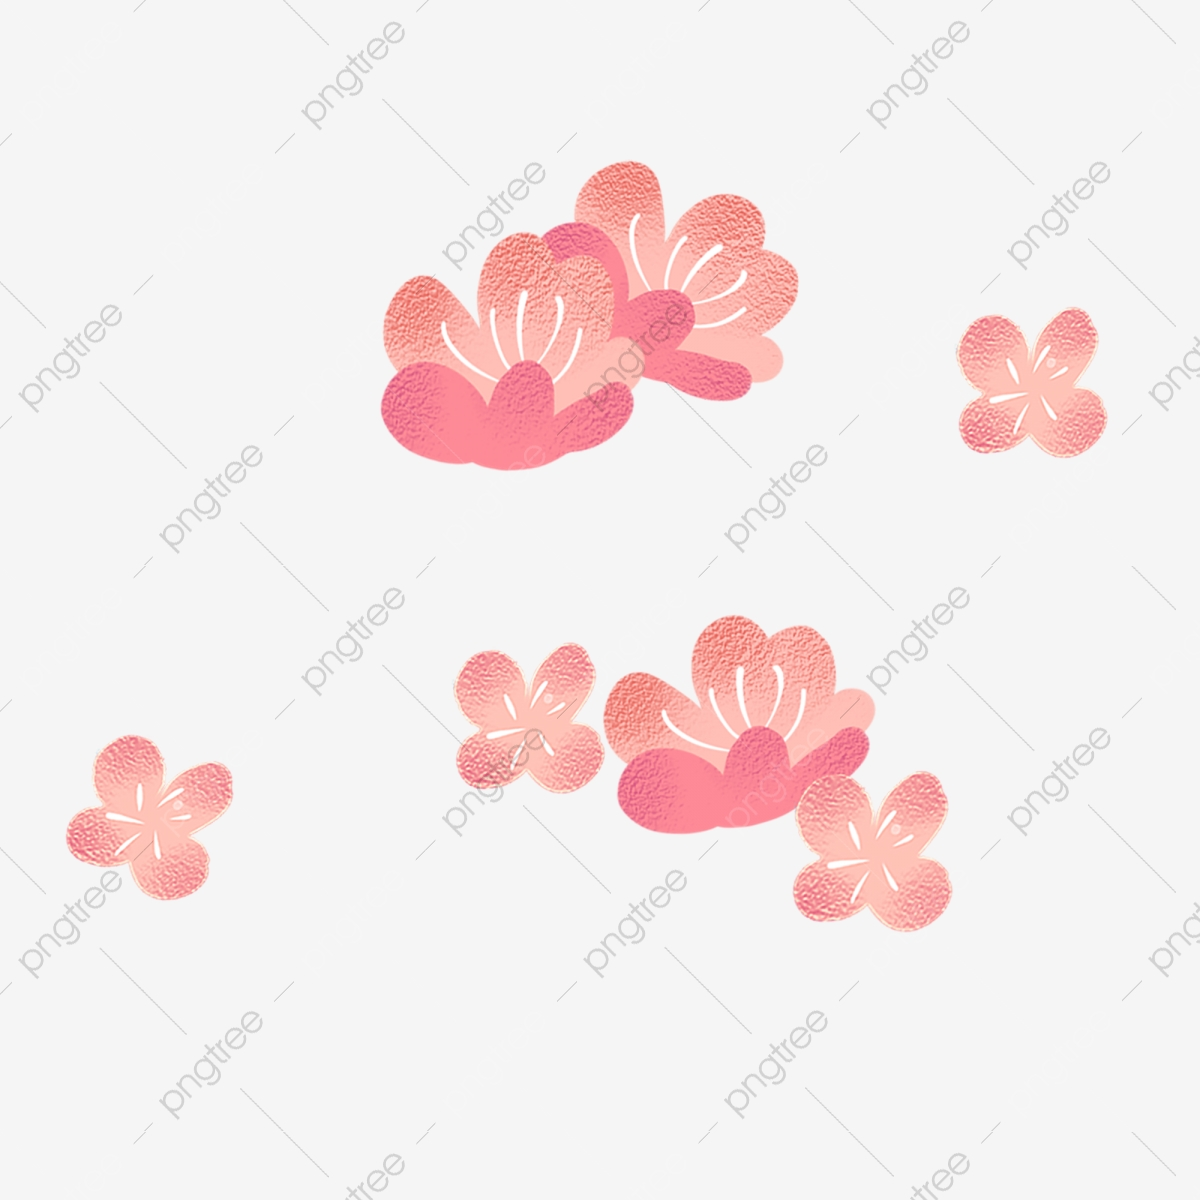 Pink Flower Cartoon Png Material Pink Flowers Cute Pink Flowers Flowers Png Transparent Clipart Image And Psd File For Free Download